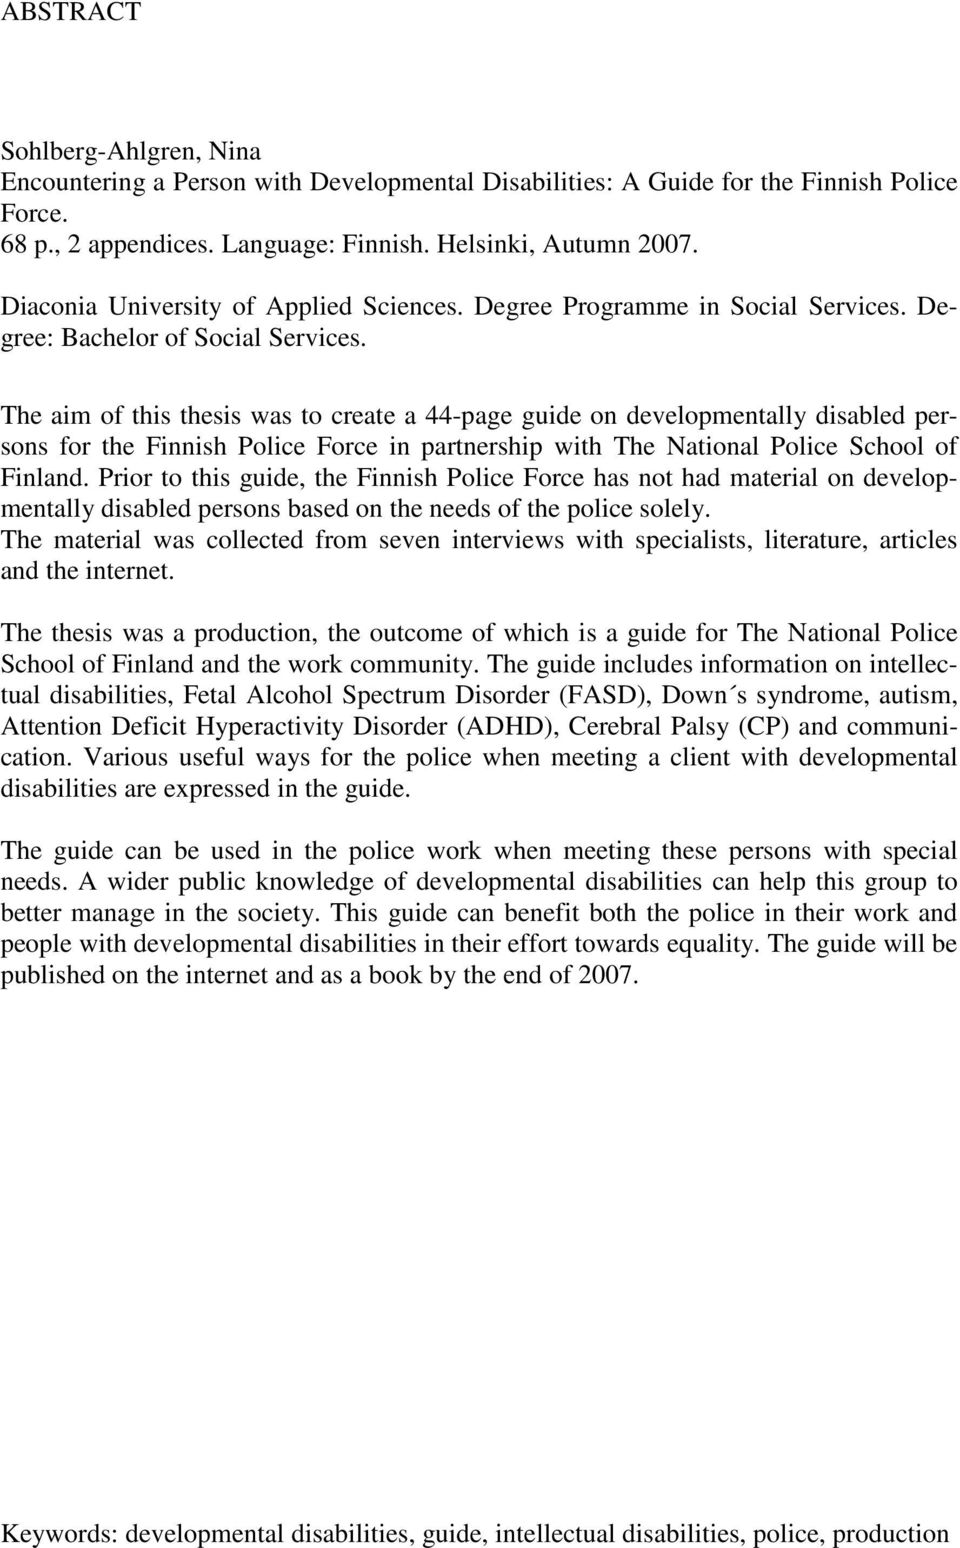 The aim of this thesis was to create a 44-page guide on developmentally disabled persons for the Finnish Police Force in partnership with The National Police School of Finland.